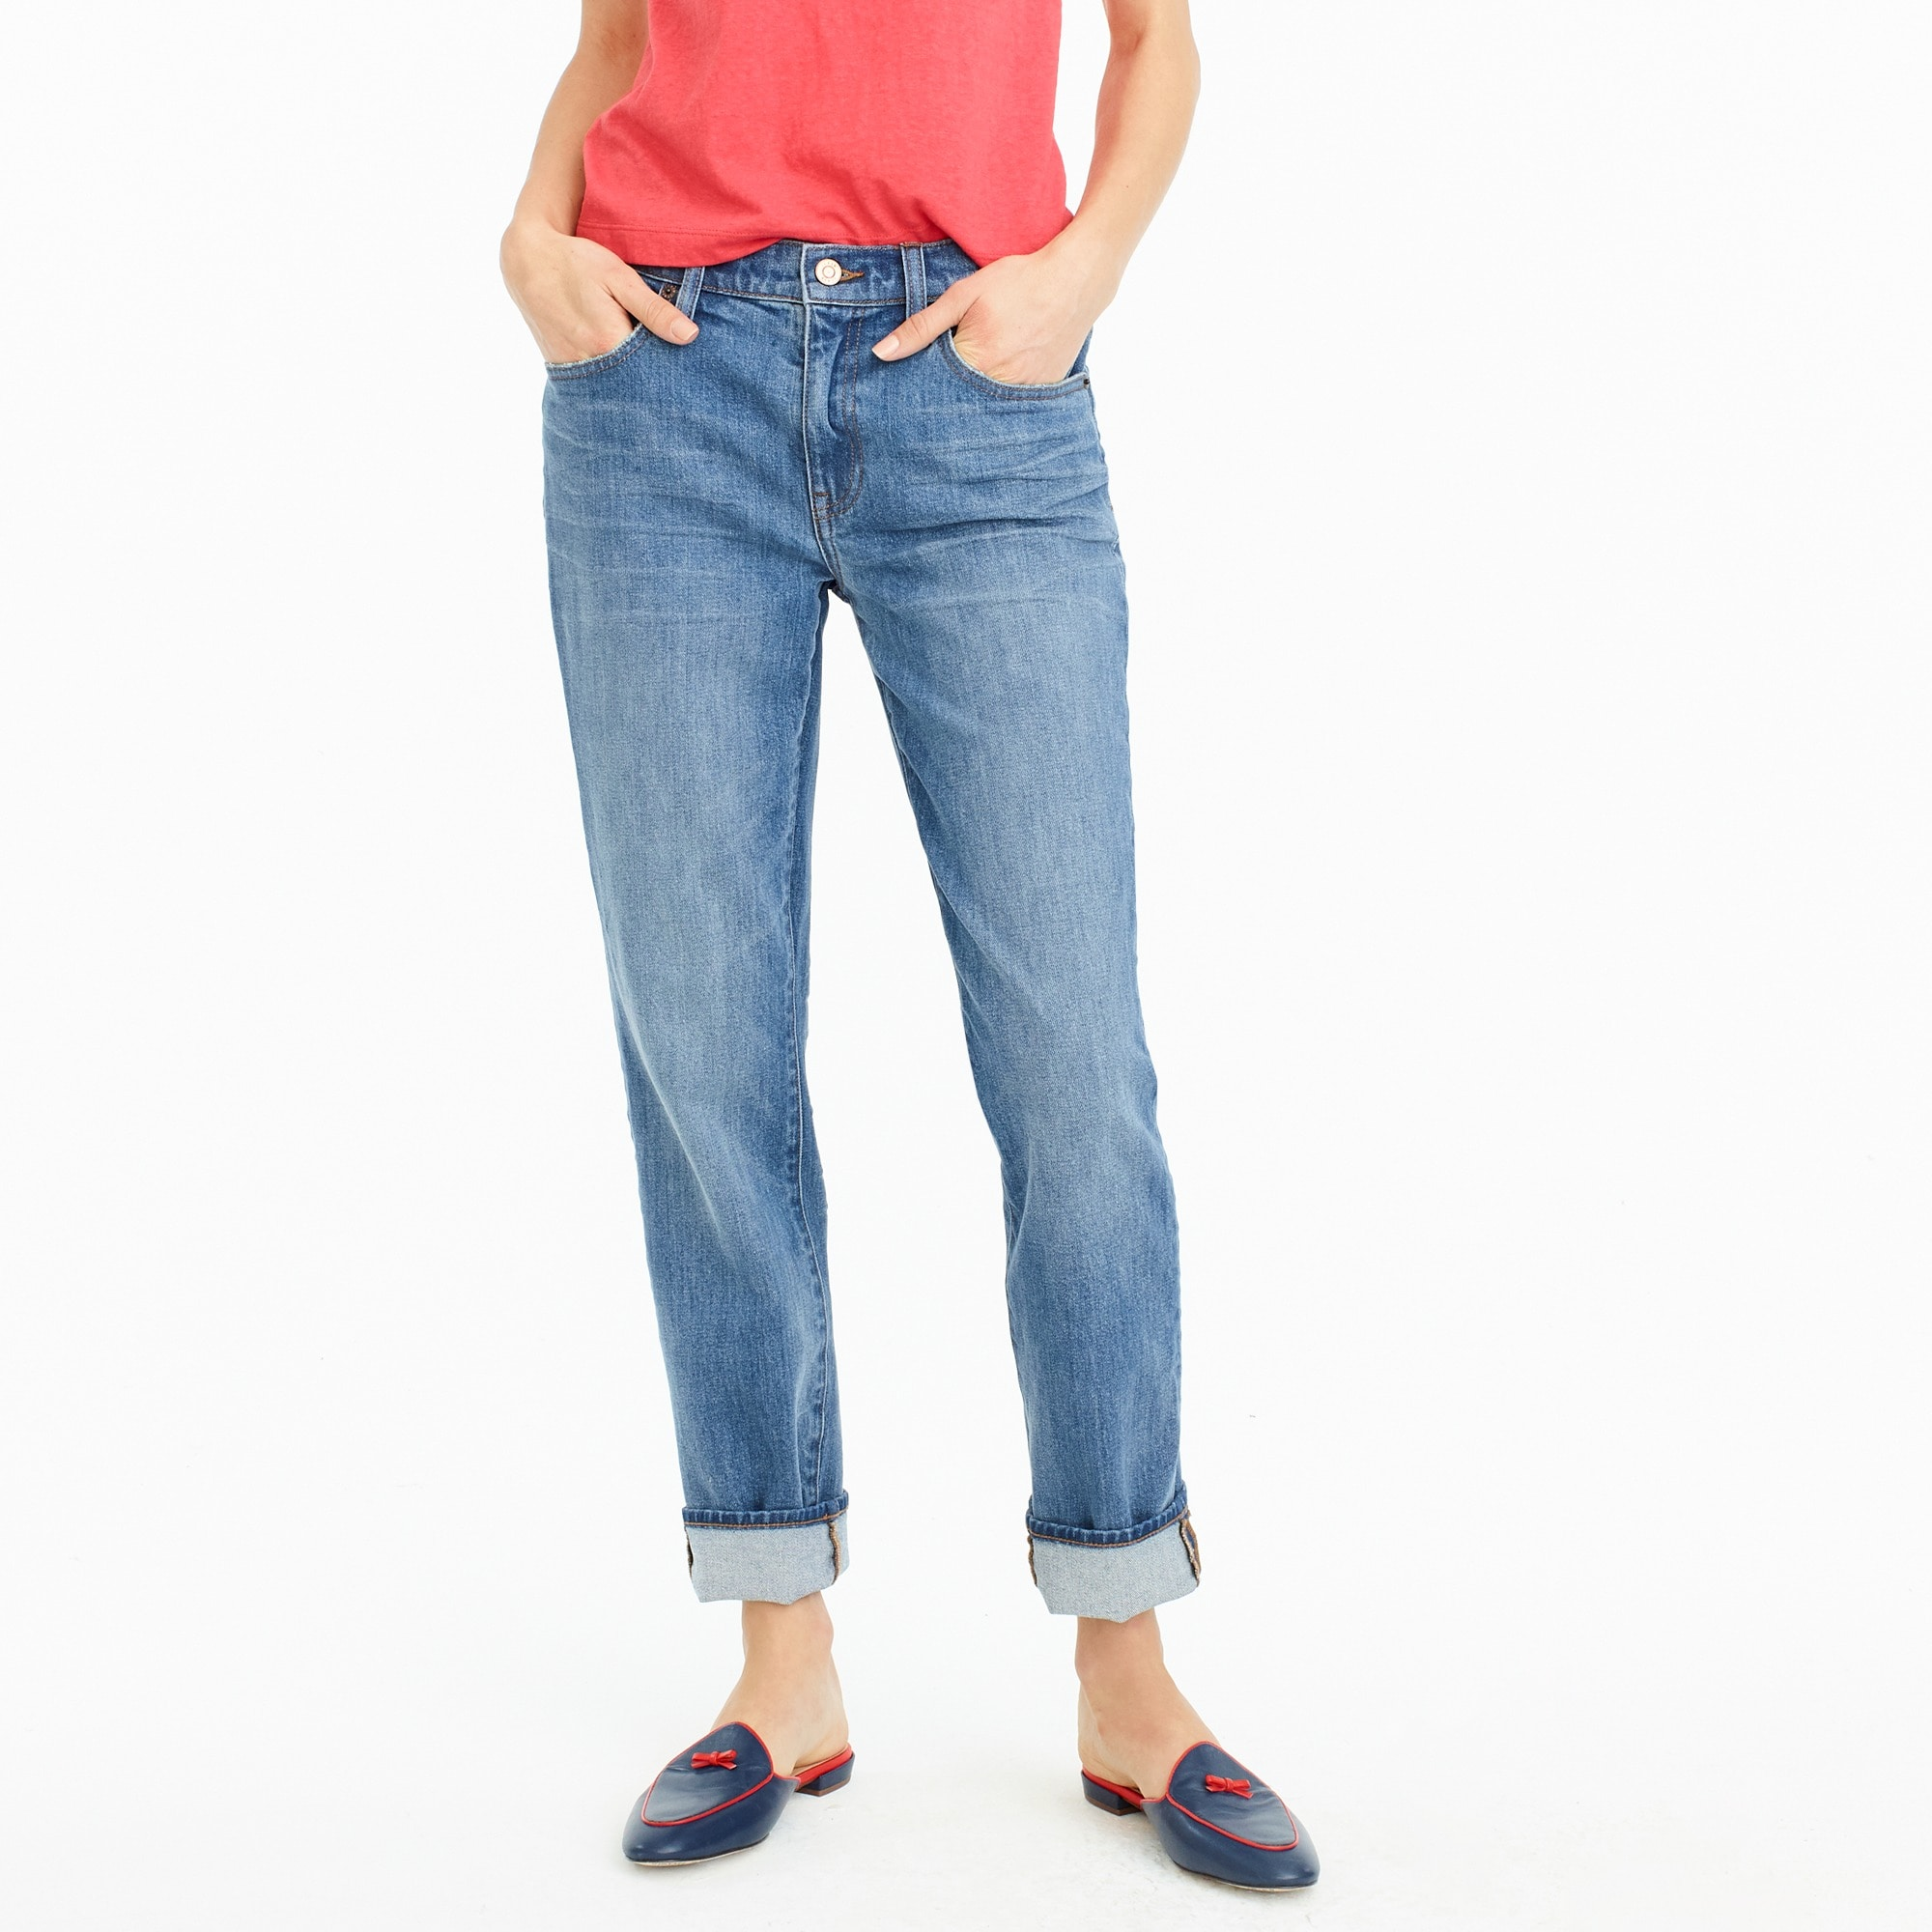 women's petite slim boyfriend jean in creston wash - women's pants